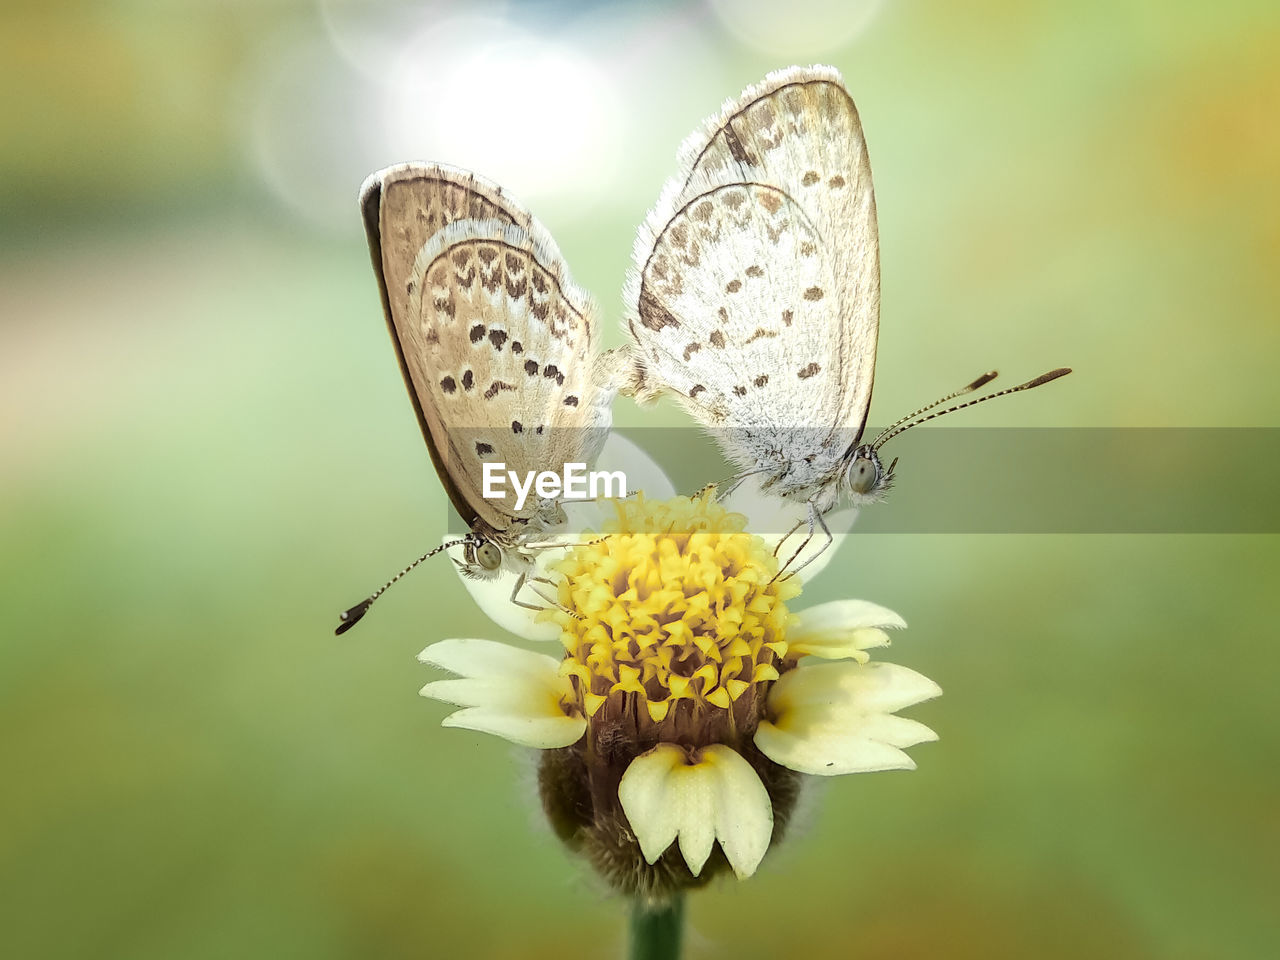 flower, flowering plant, plant, fragility, beauty in nature, vulnerability, insect, close-up, invertebrate, freshness, flower head, petal, animals in the wild, focus on foreground, animal themes, animal wildlife, animal, inflorescence, nature, animal wing, pollination, no people, butterfly - insect, pollen, outdoors, butterfly